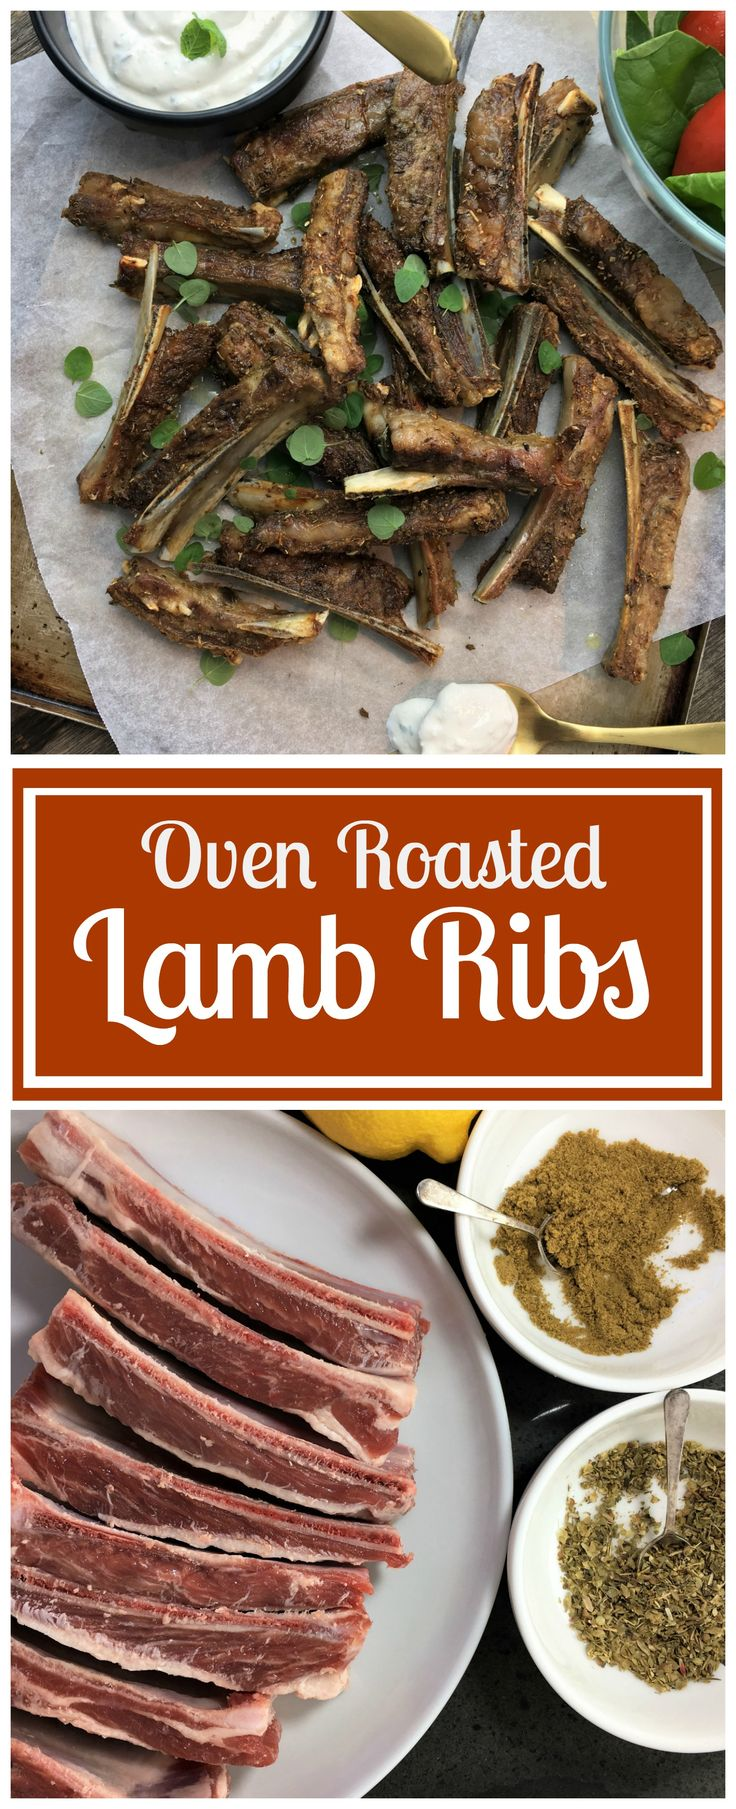 Oven roasted lamb ribs with yoghurt mint & garlic sauce. Easy oven baked lamb, so moist & tender.